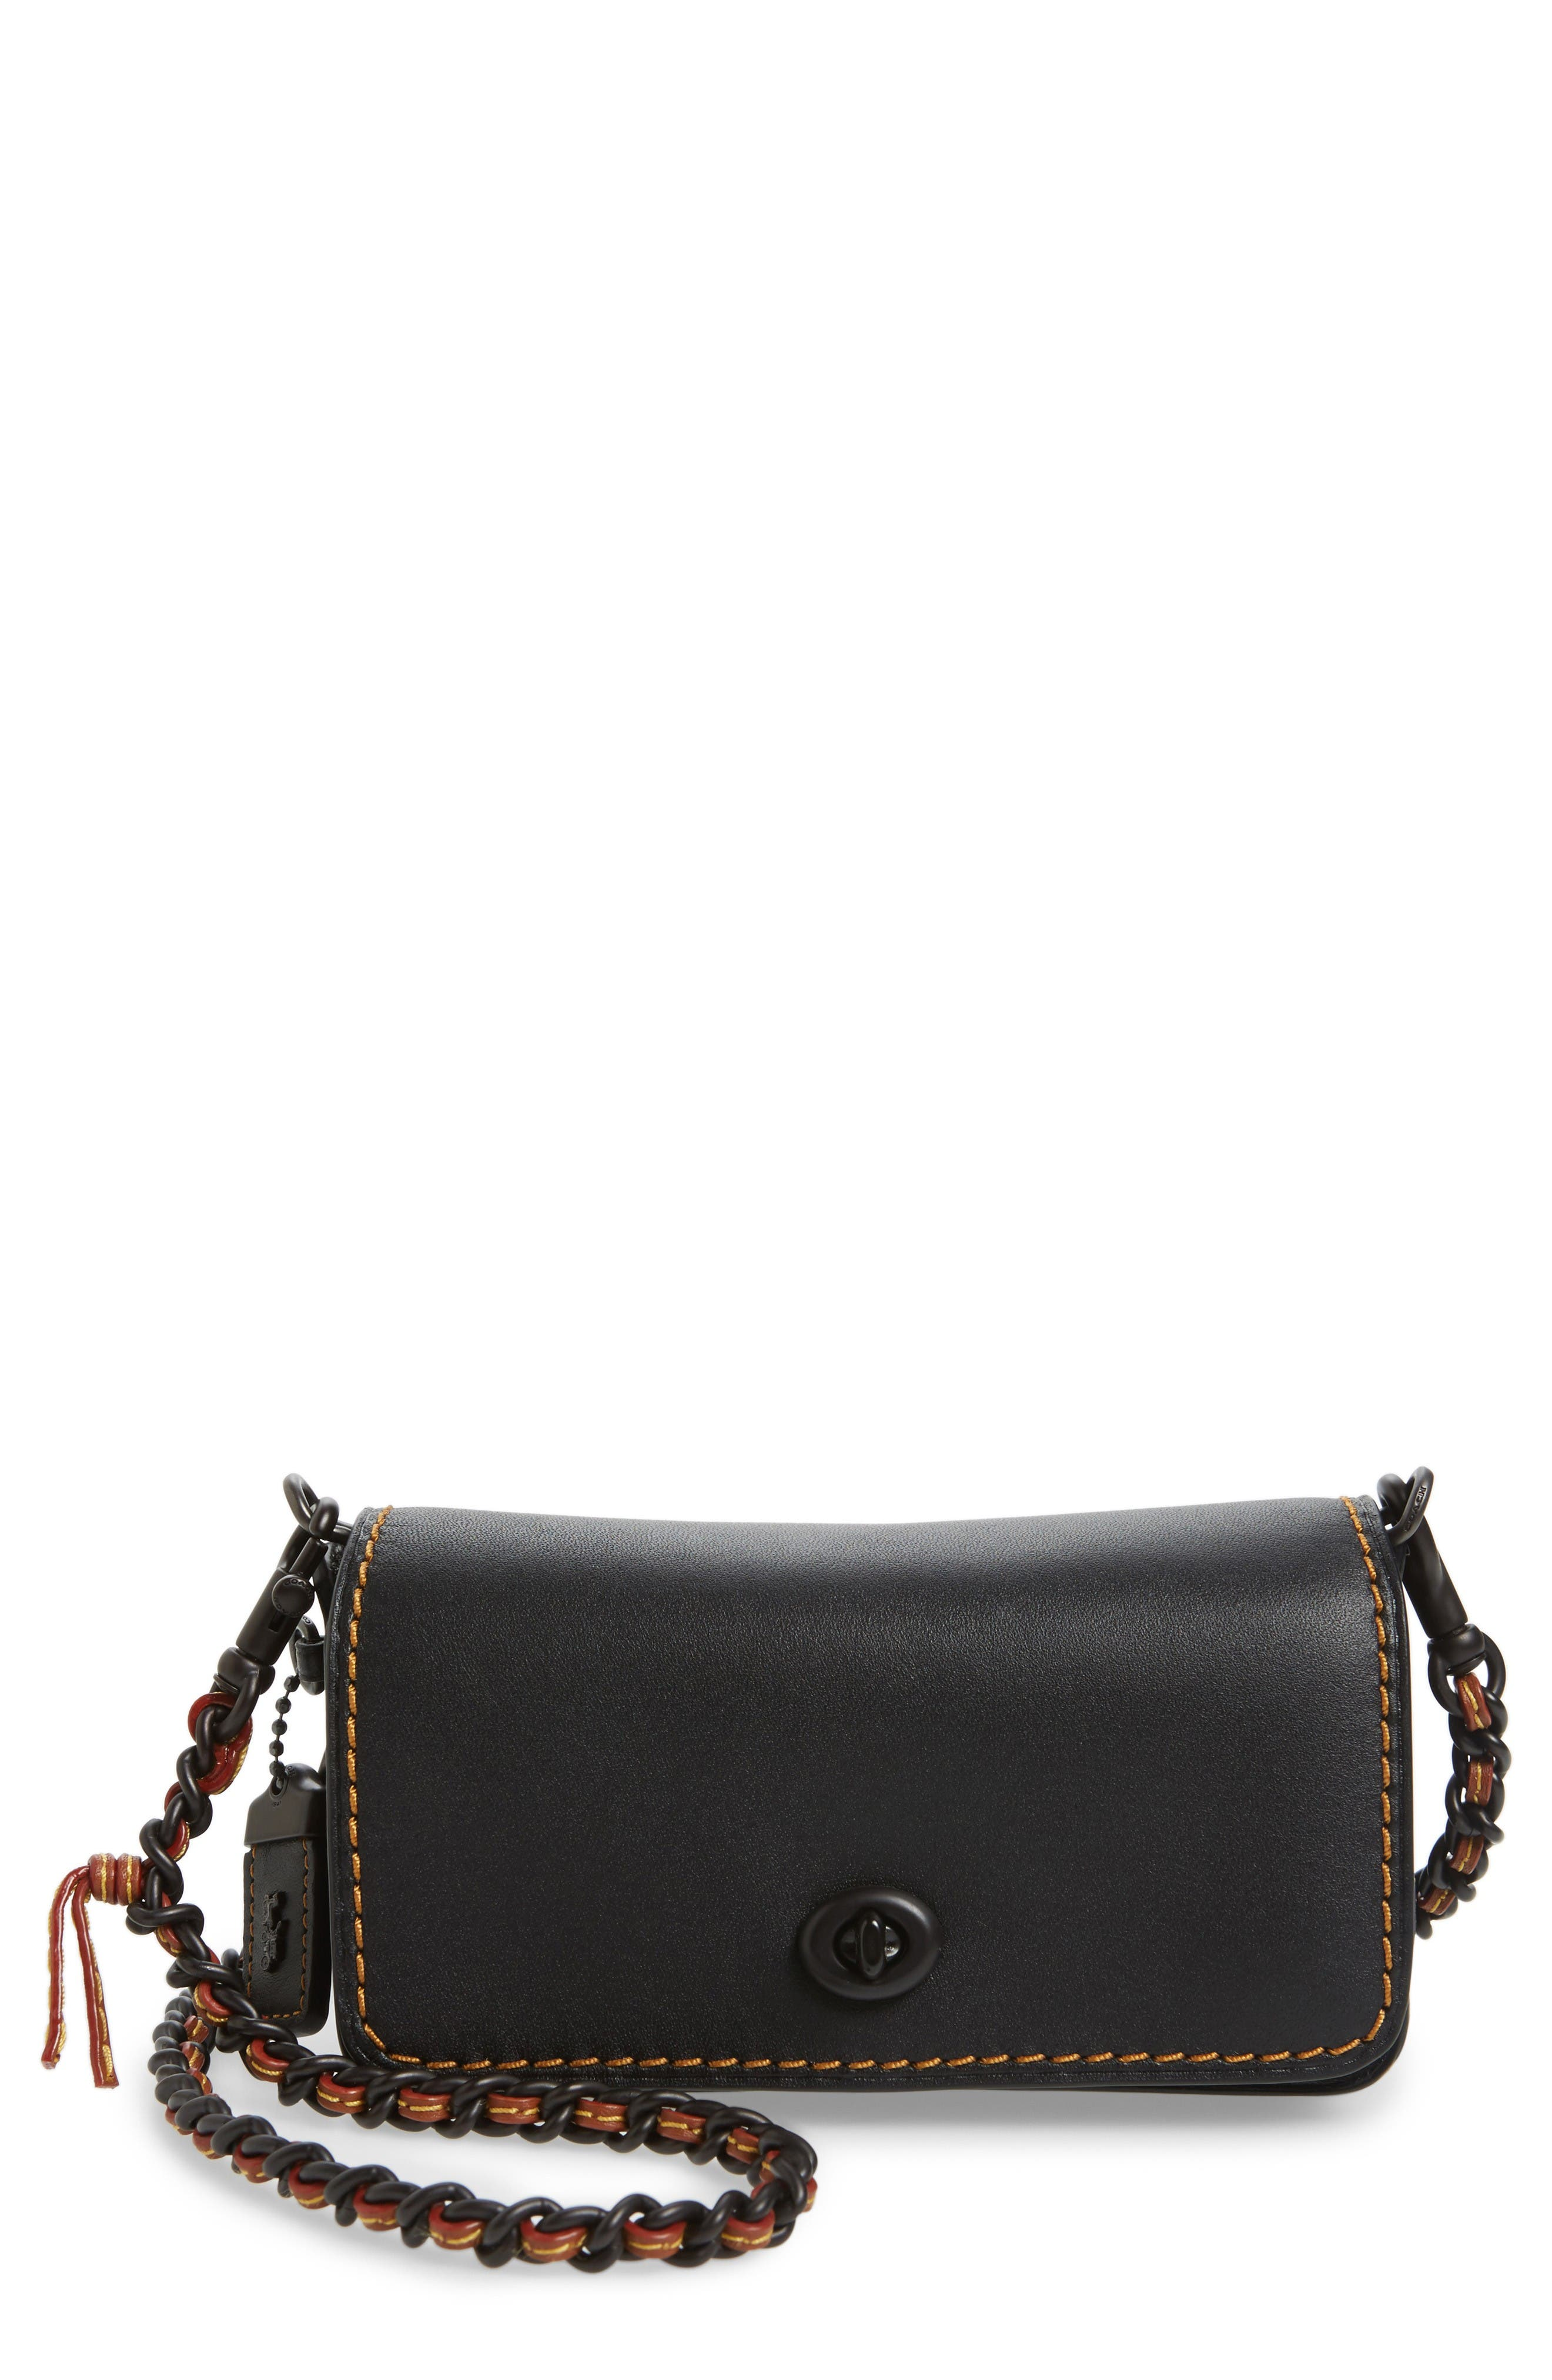 Alternate Image 1 Selected - COACH 1941 Dinky 15 Leather Crossbody Bag